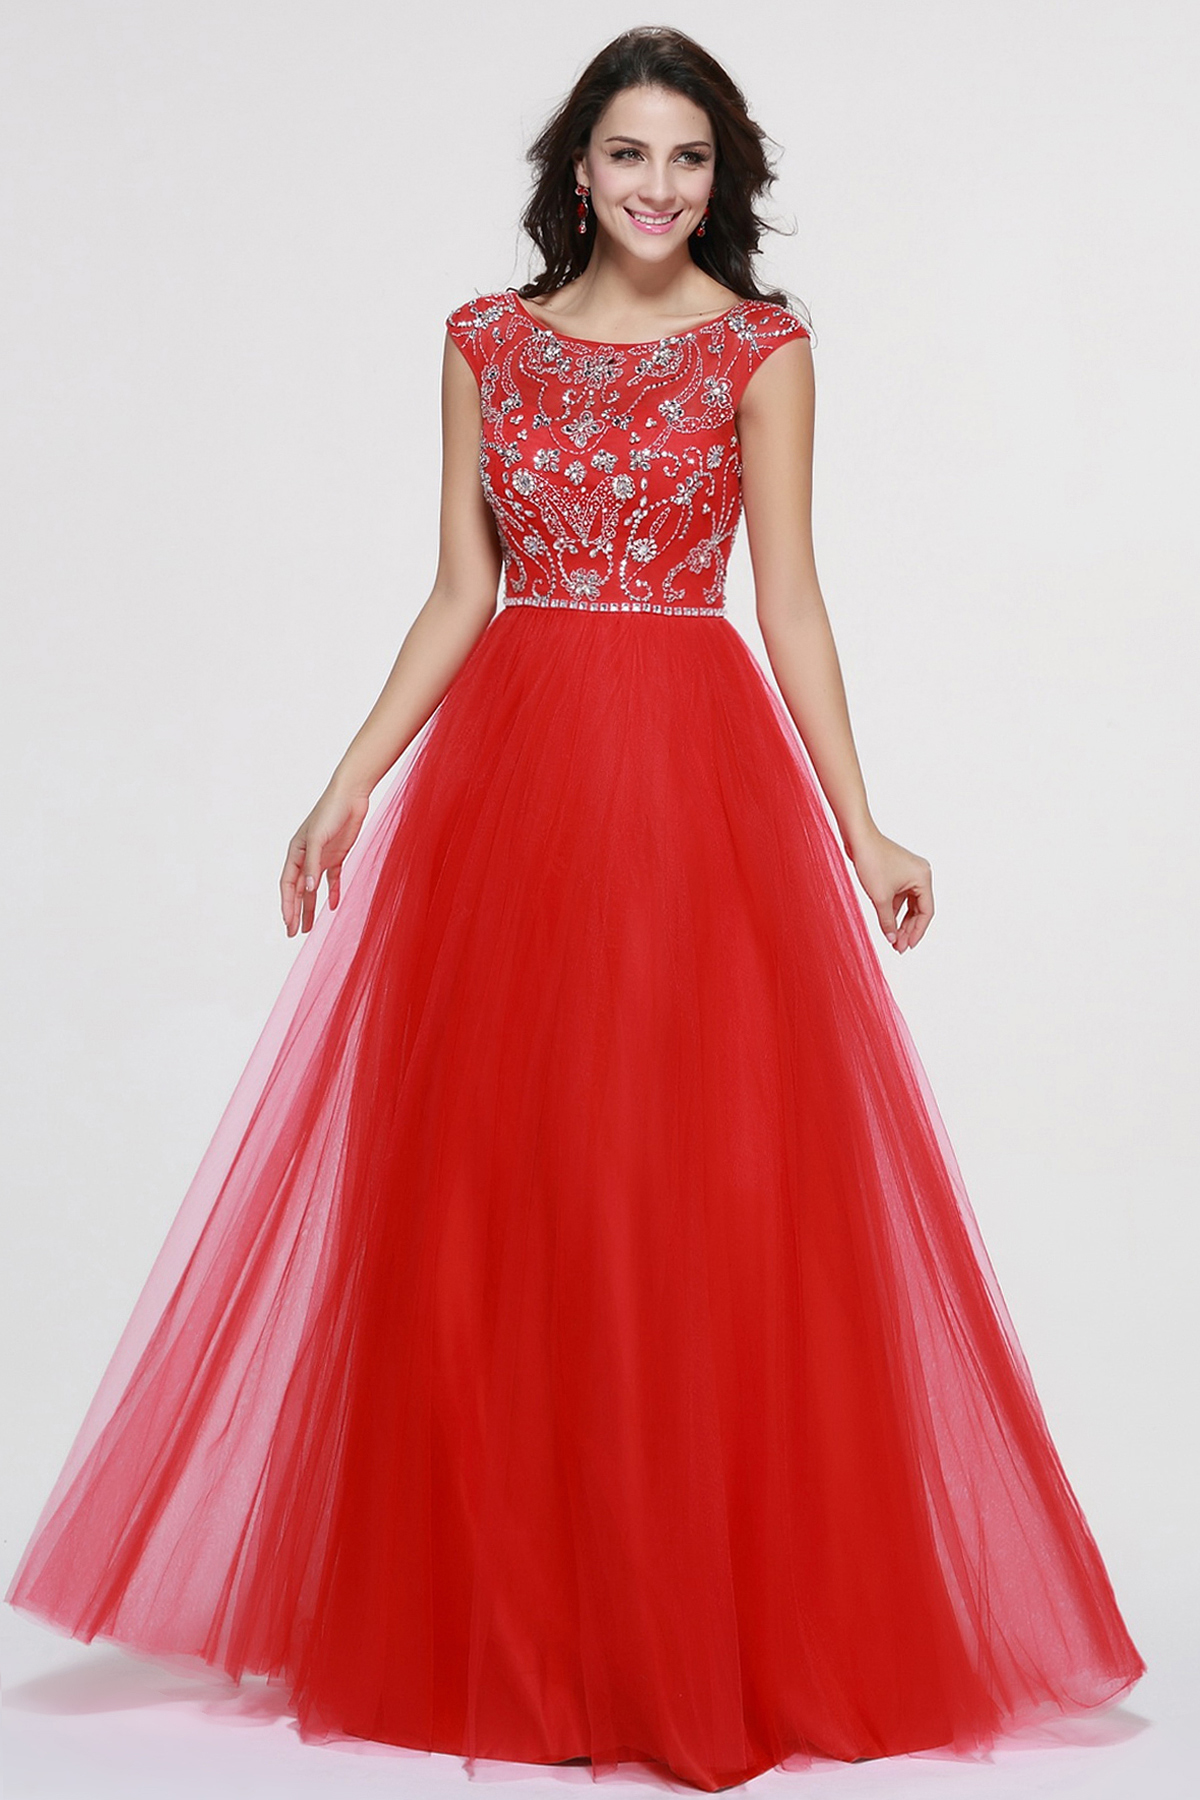 Bling Beaded Patterns Bodice A-line Red Tulle Prom Dress